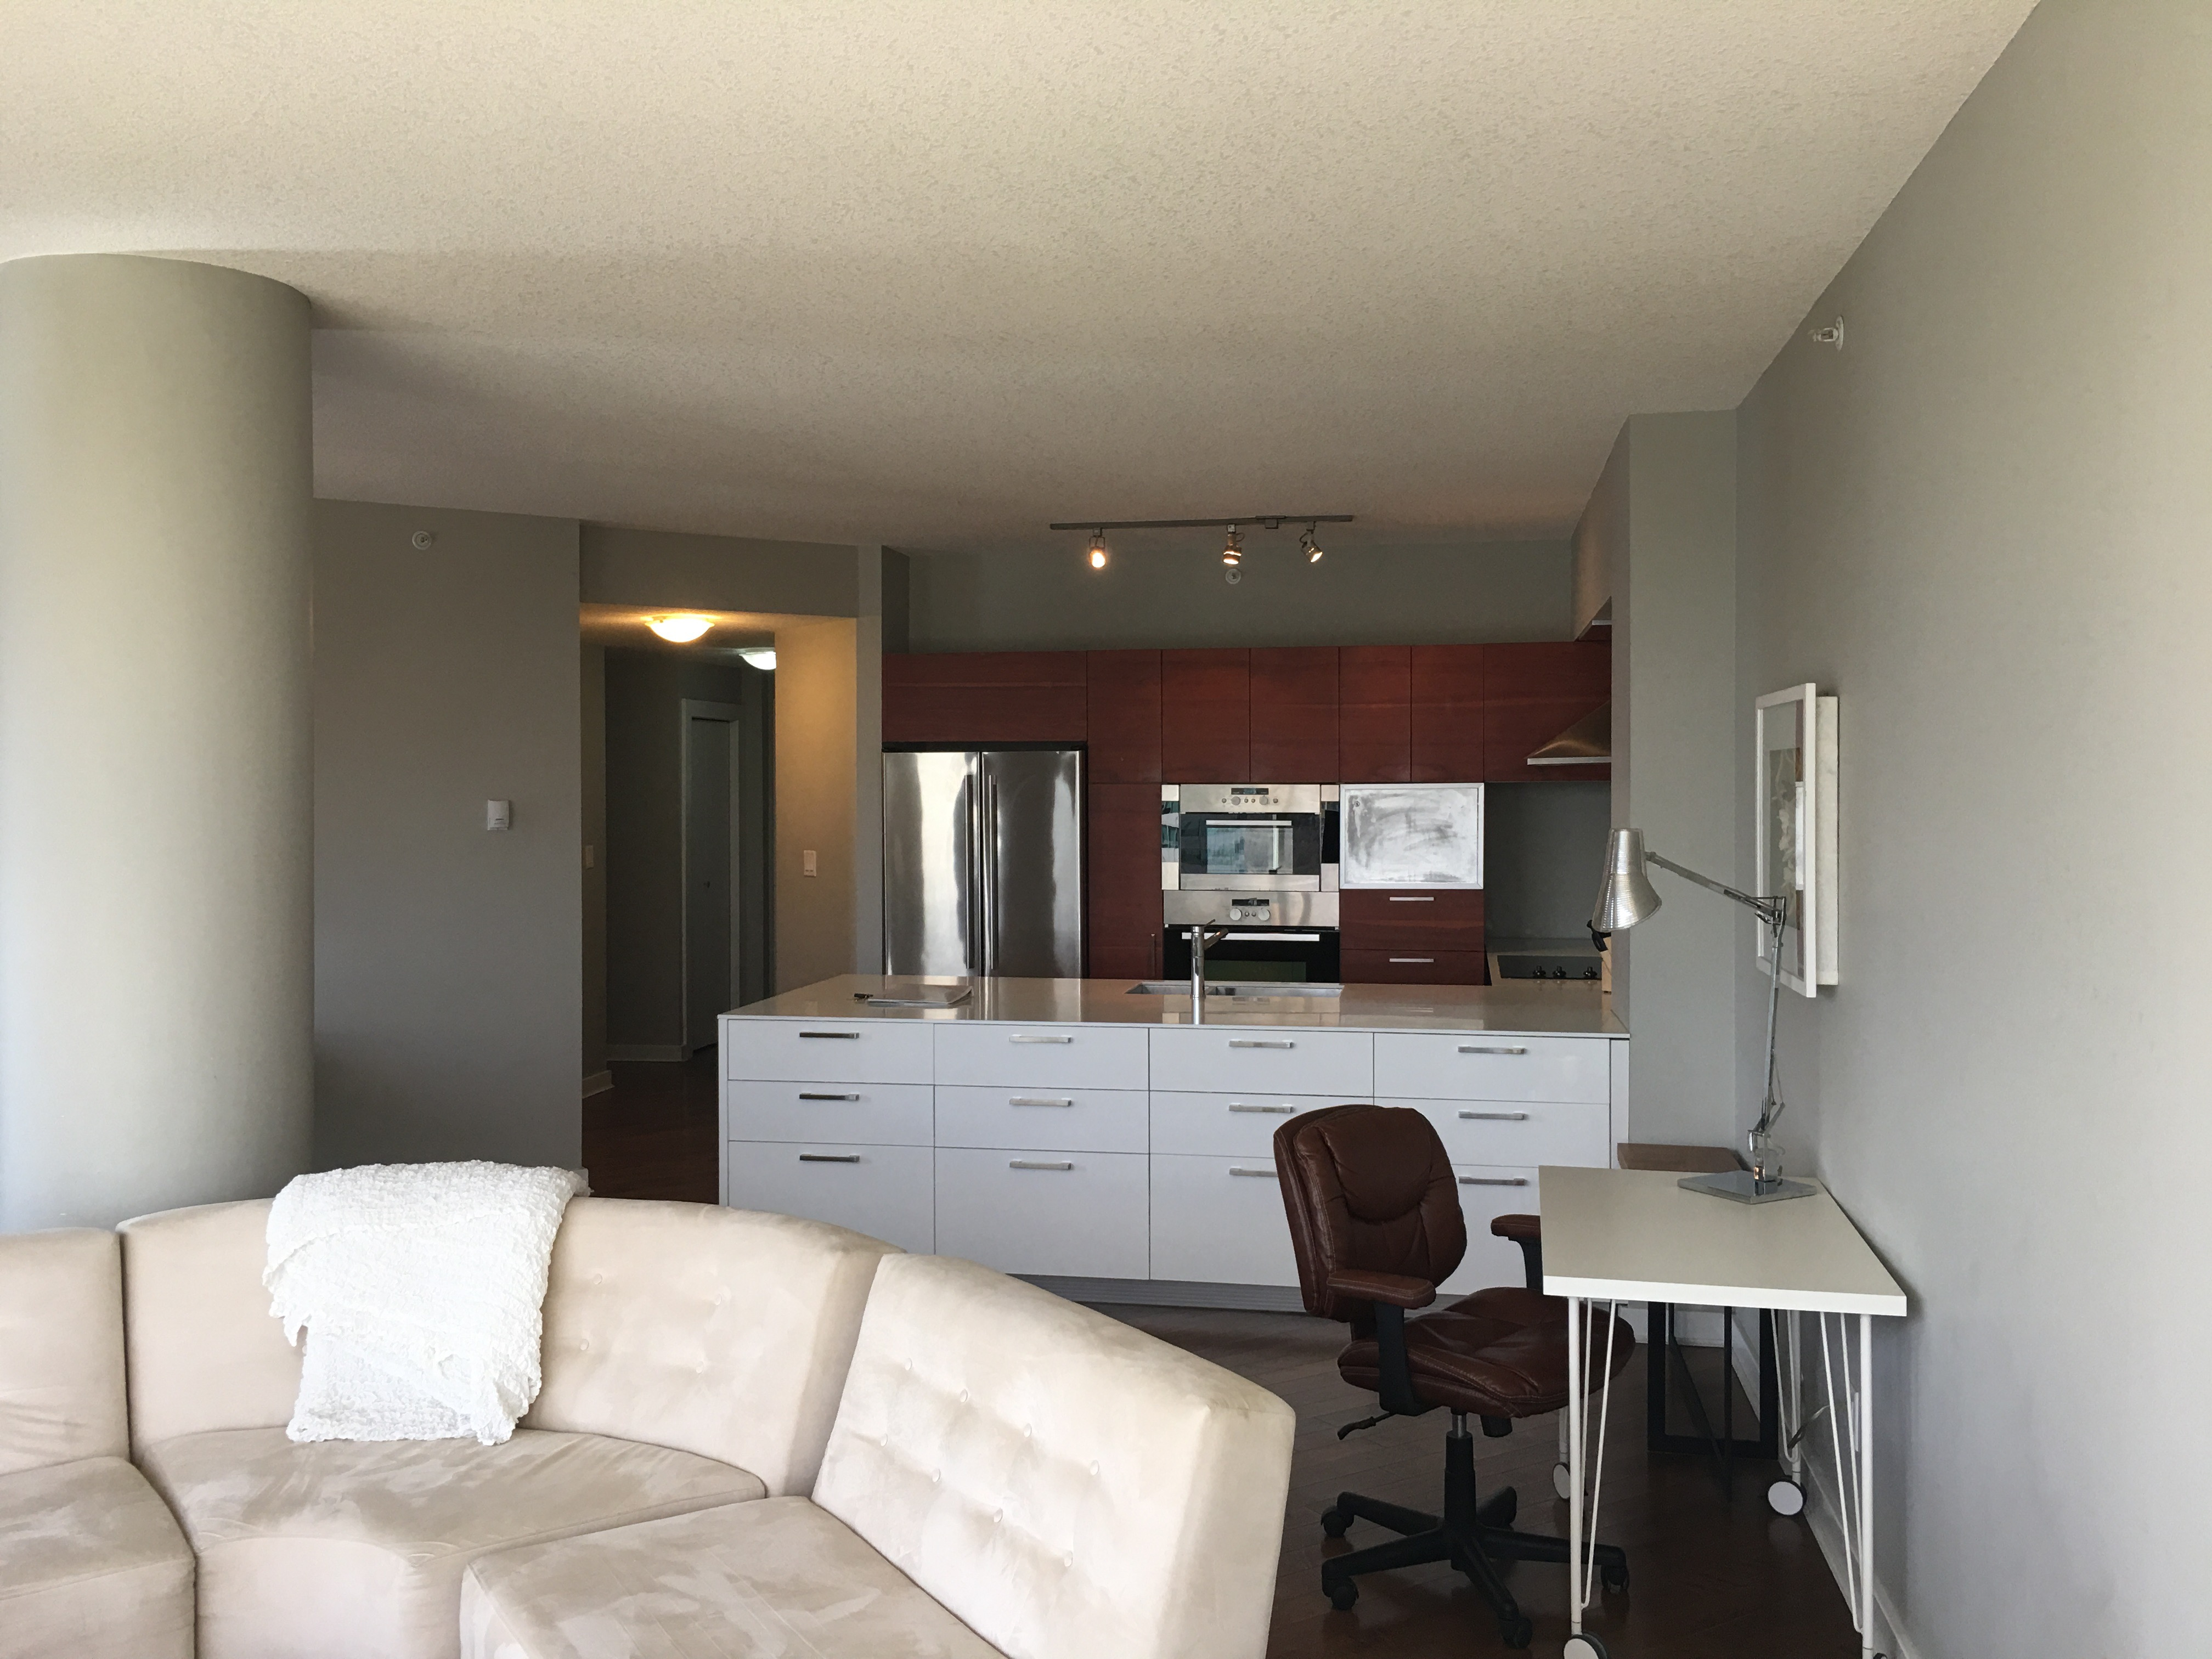 Downtown Executive furnished 2 bed 2 bath Condo, ICON II  $2475/month